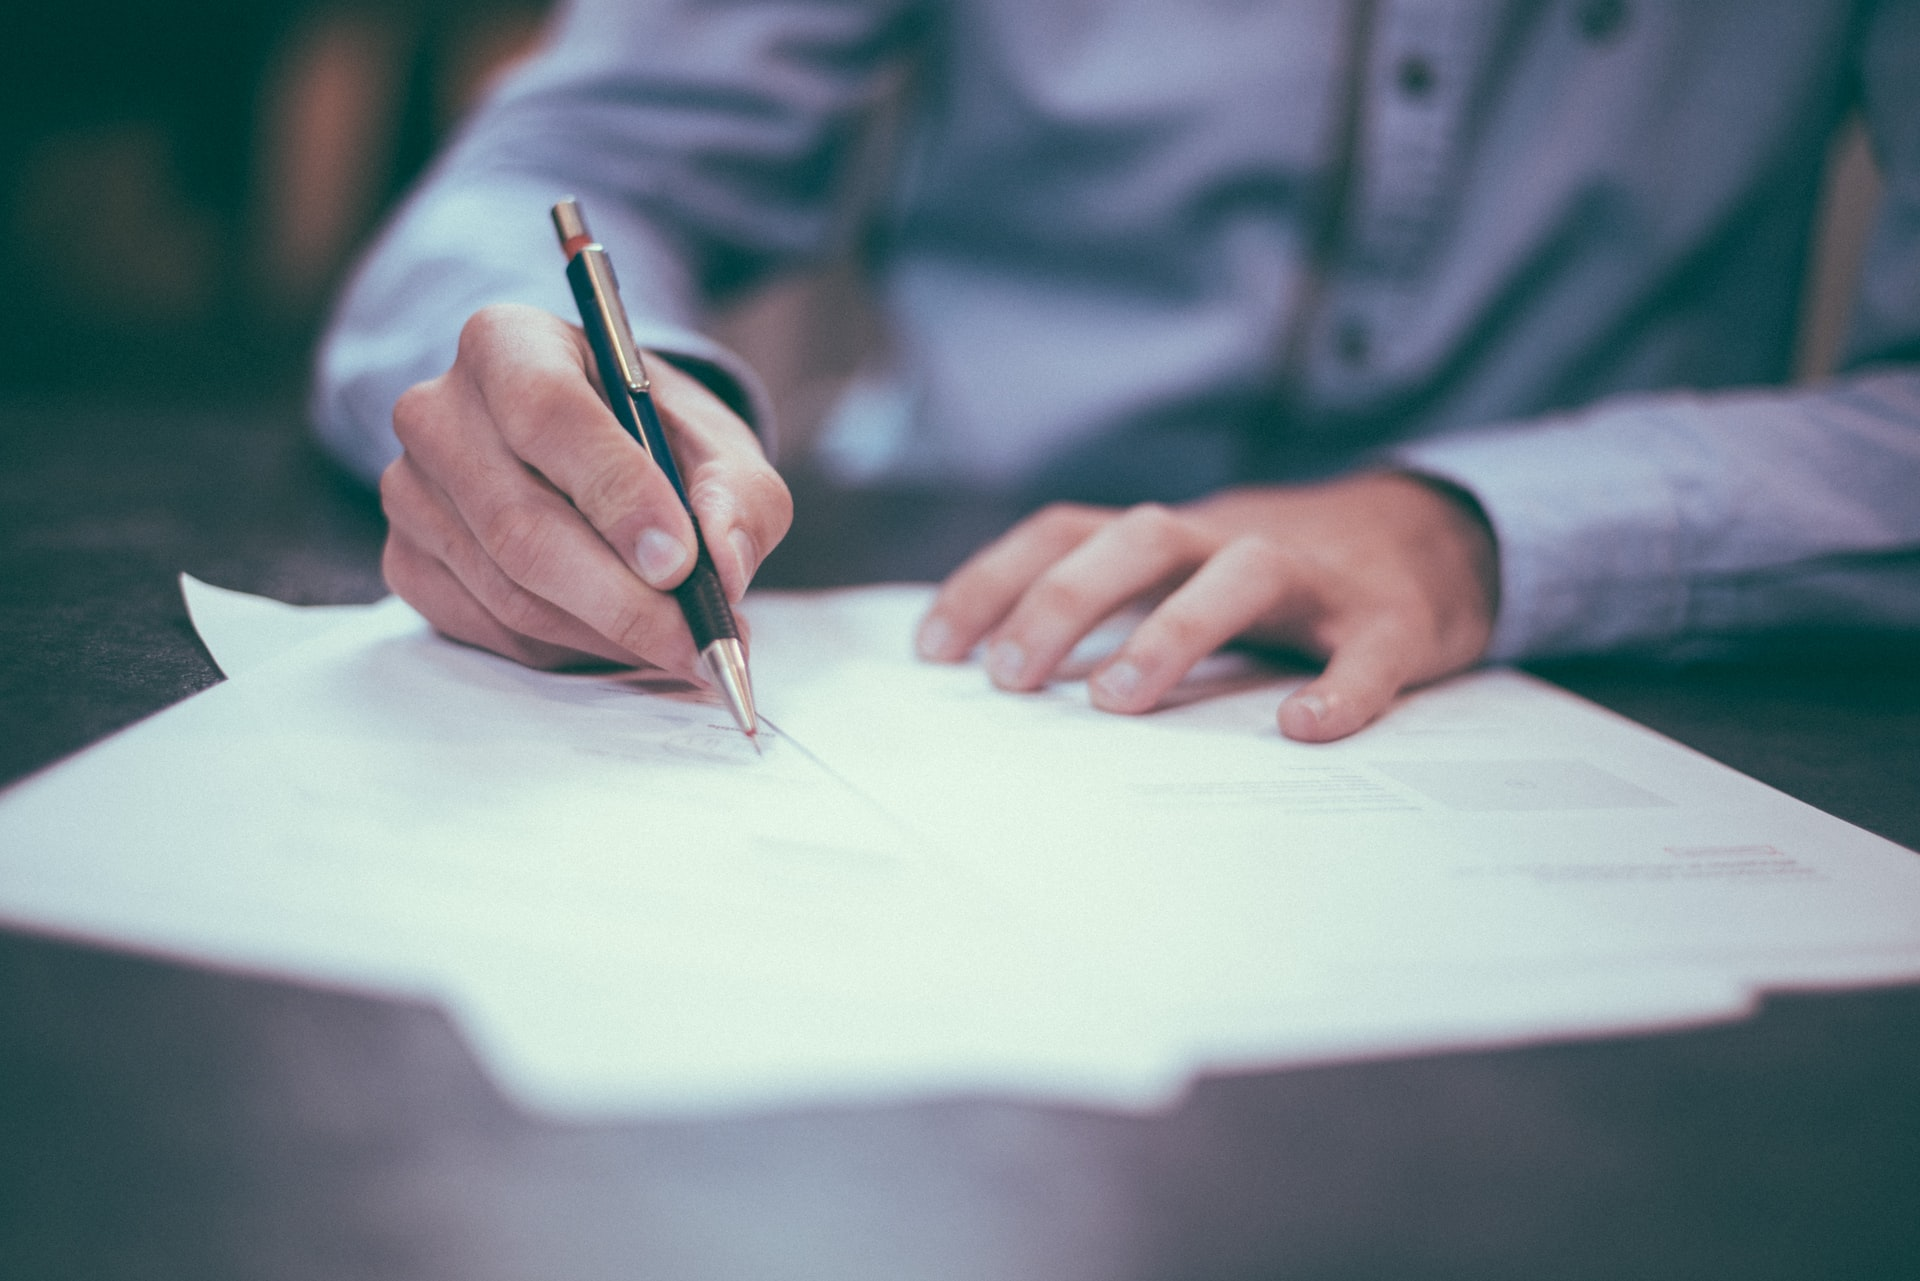 Man writing or signing a document.